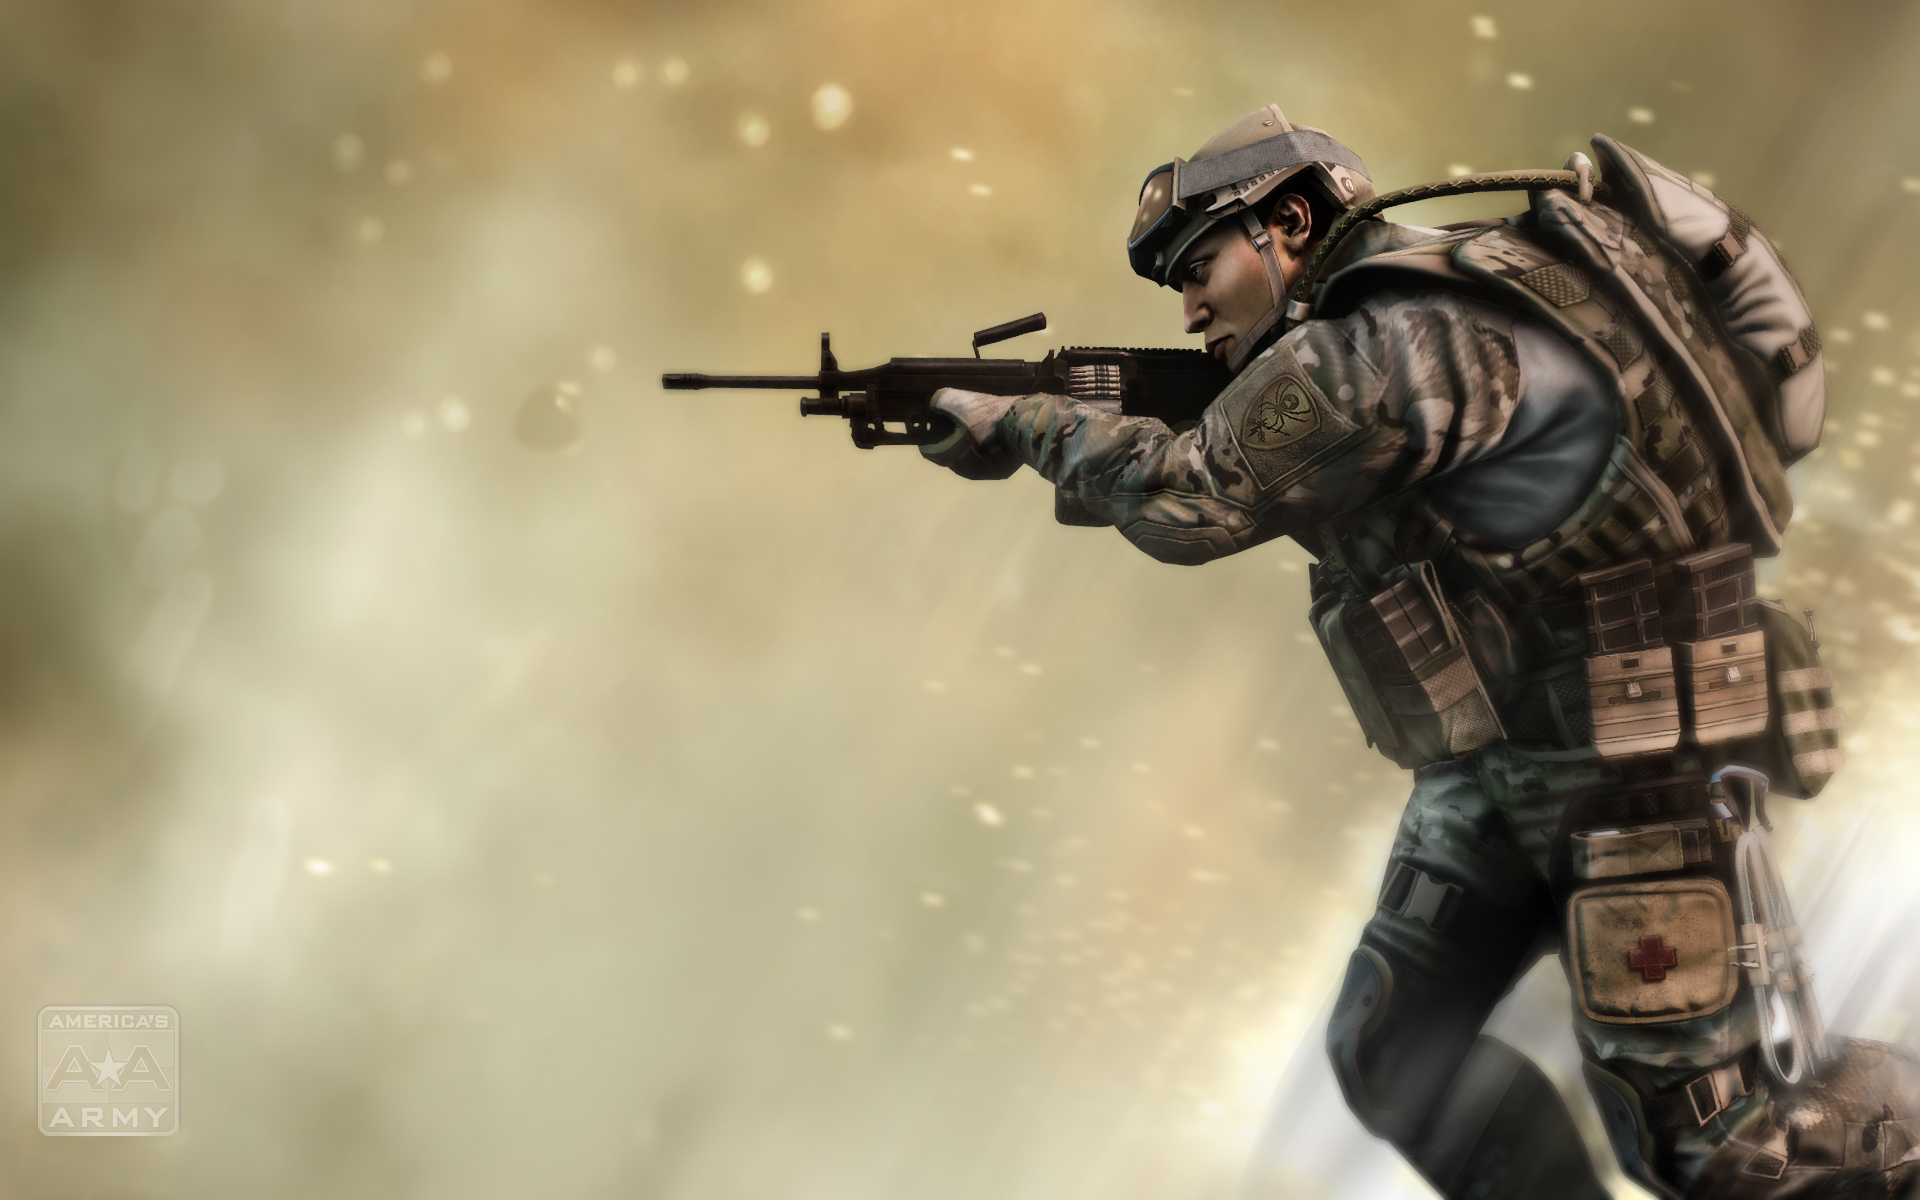 Cool Military Army Wallpaper Games 675 Wallpaper with 1920x1200 1920x1200